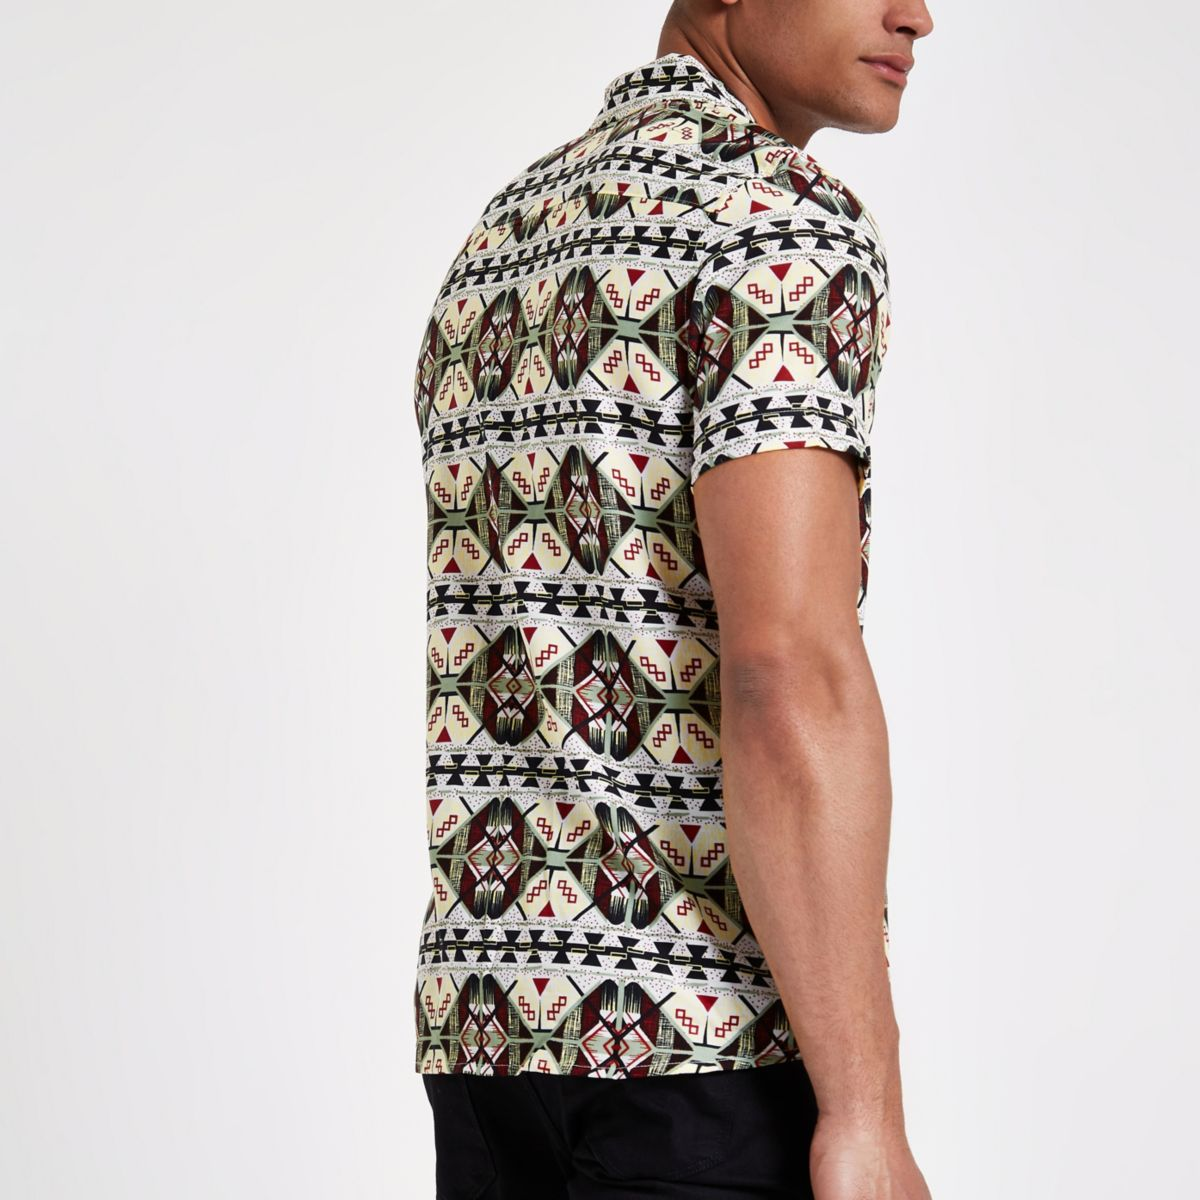 White Only & Sons Reverse Print Shirt                                  White Only & Sons Reverse Print Shirt by River Island